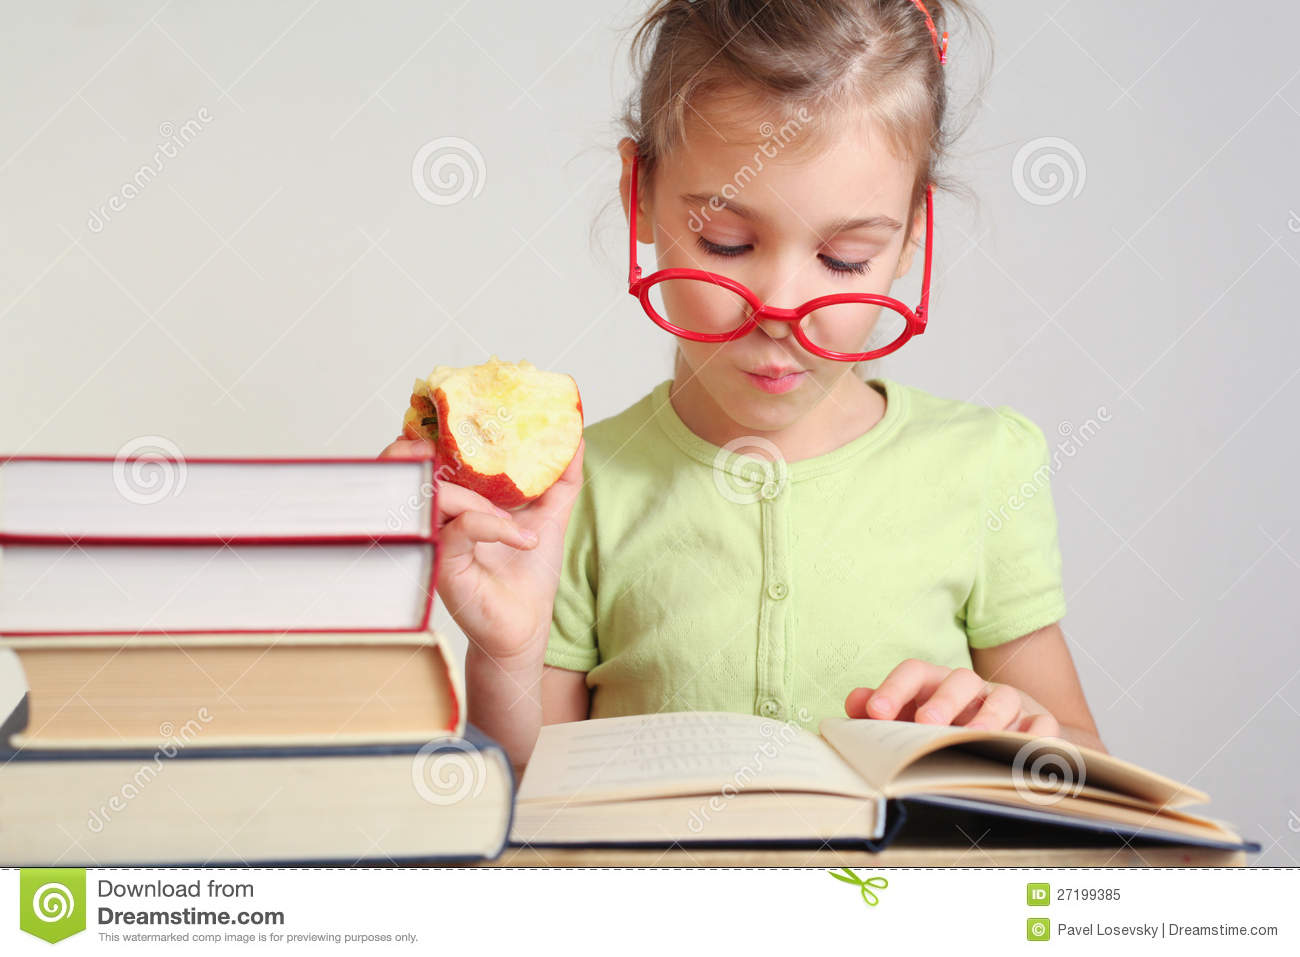 book report little woman Vocabulary from little women word are organized by section of the book and presented in context, with definition click on a word for pronunciation, synonyms, examples of use, more click on a word for pronunciation, synonyms, examples of use, more.